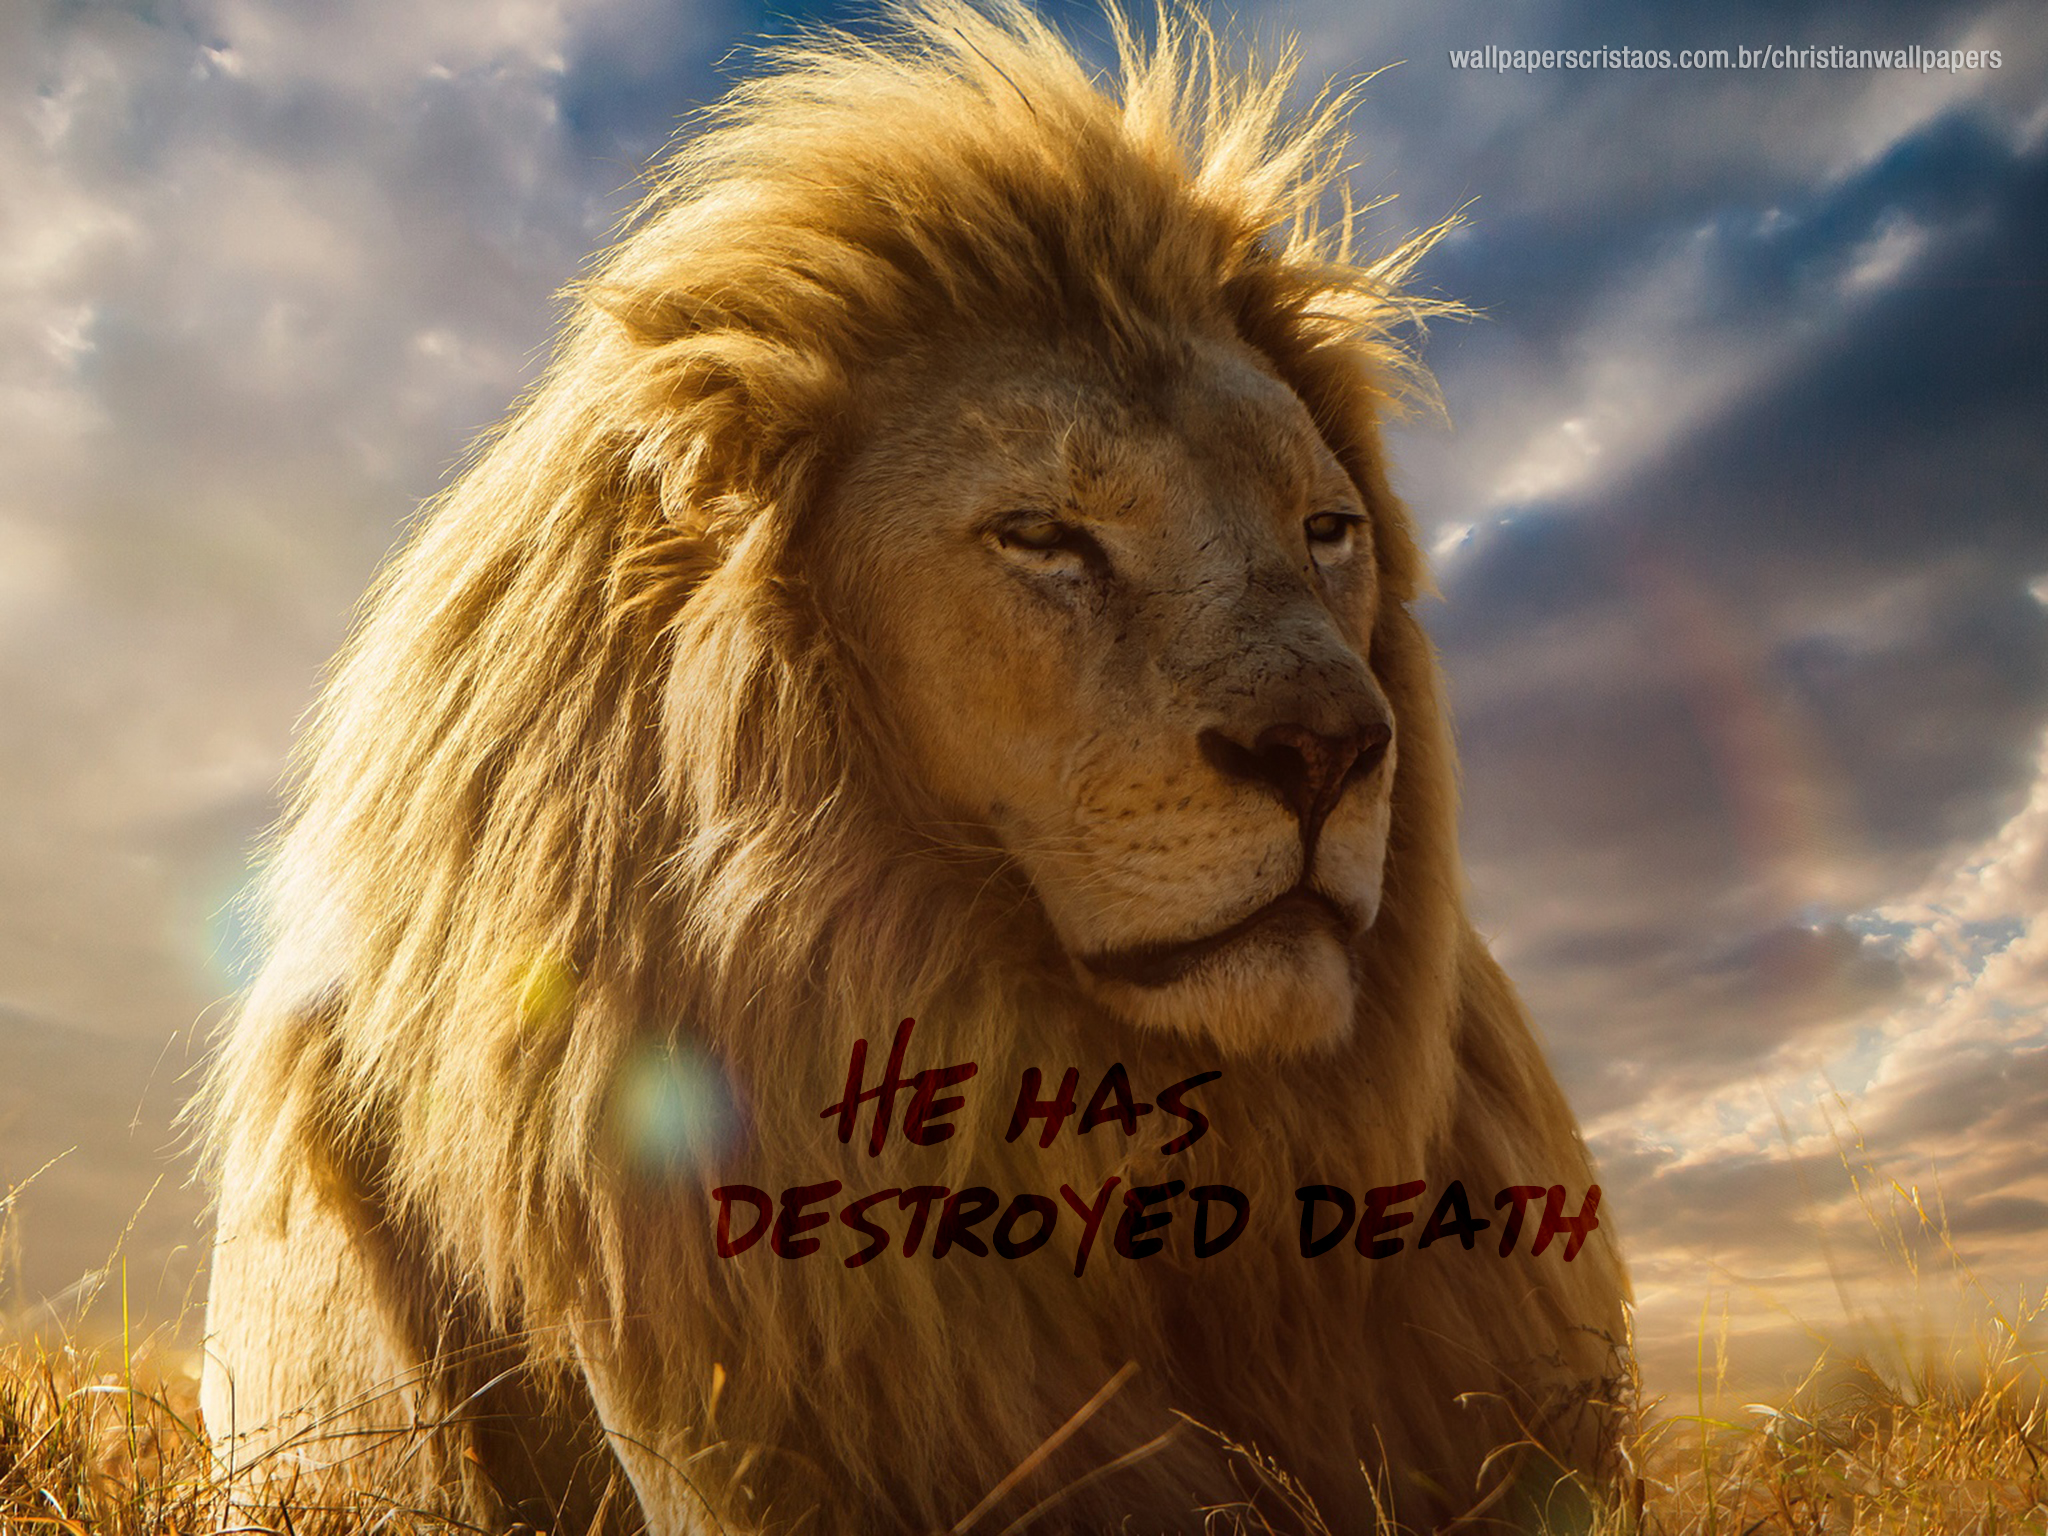 Simple Wallpaper Lion Facebook - He-has-destroyed-death-lion-christian-wallpaper-hd_2048x1536  Perfect Image Reference_55370.jpg